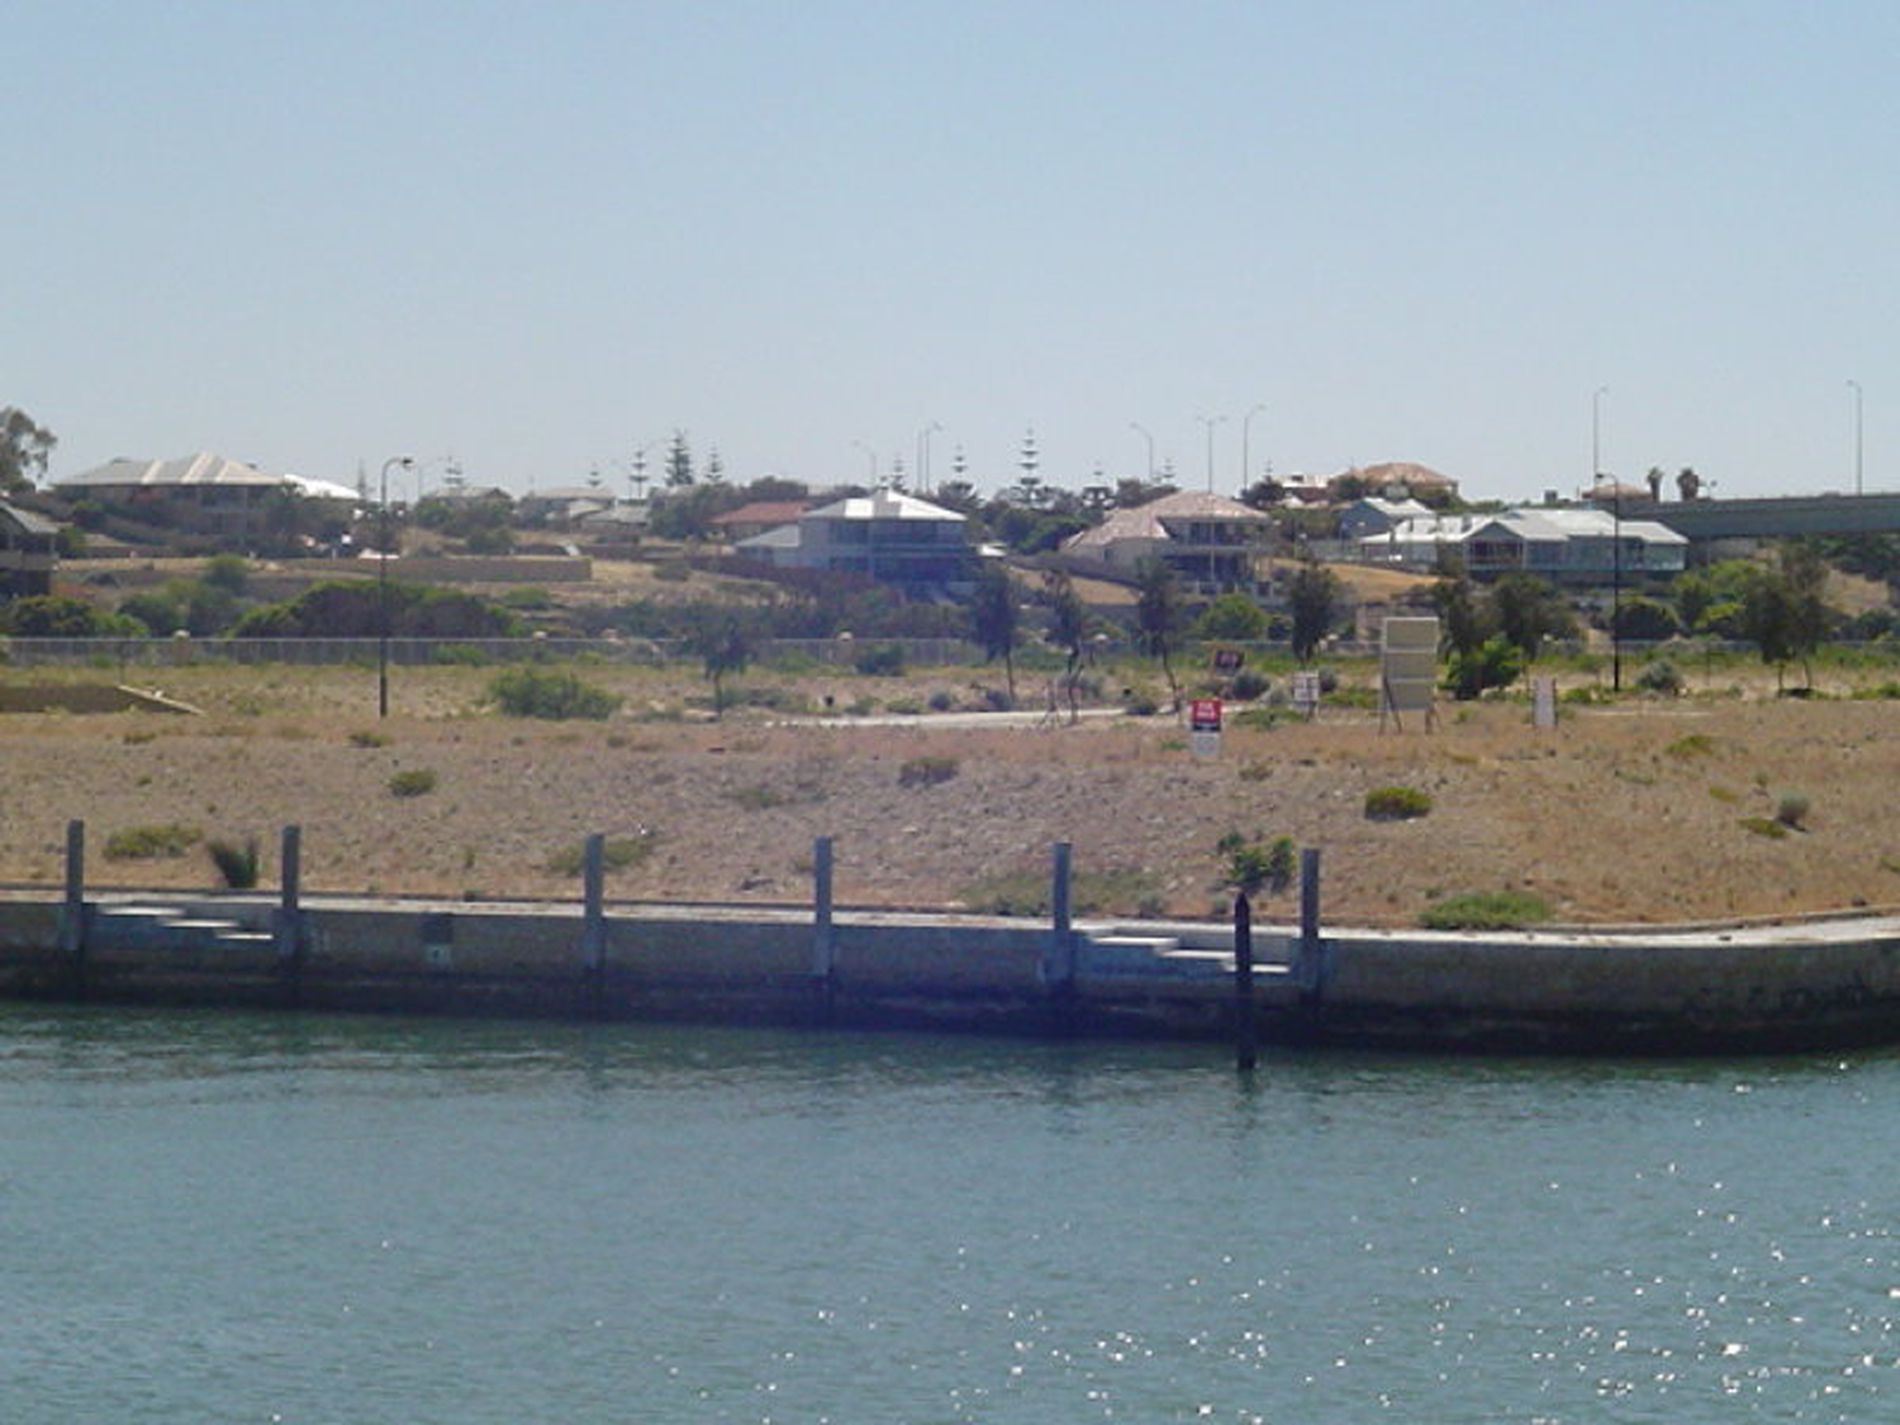 Lot 236, 236 Channel View, Dawesville